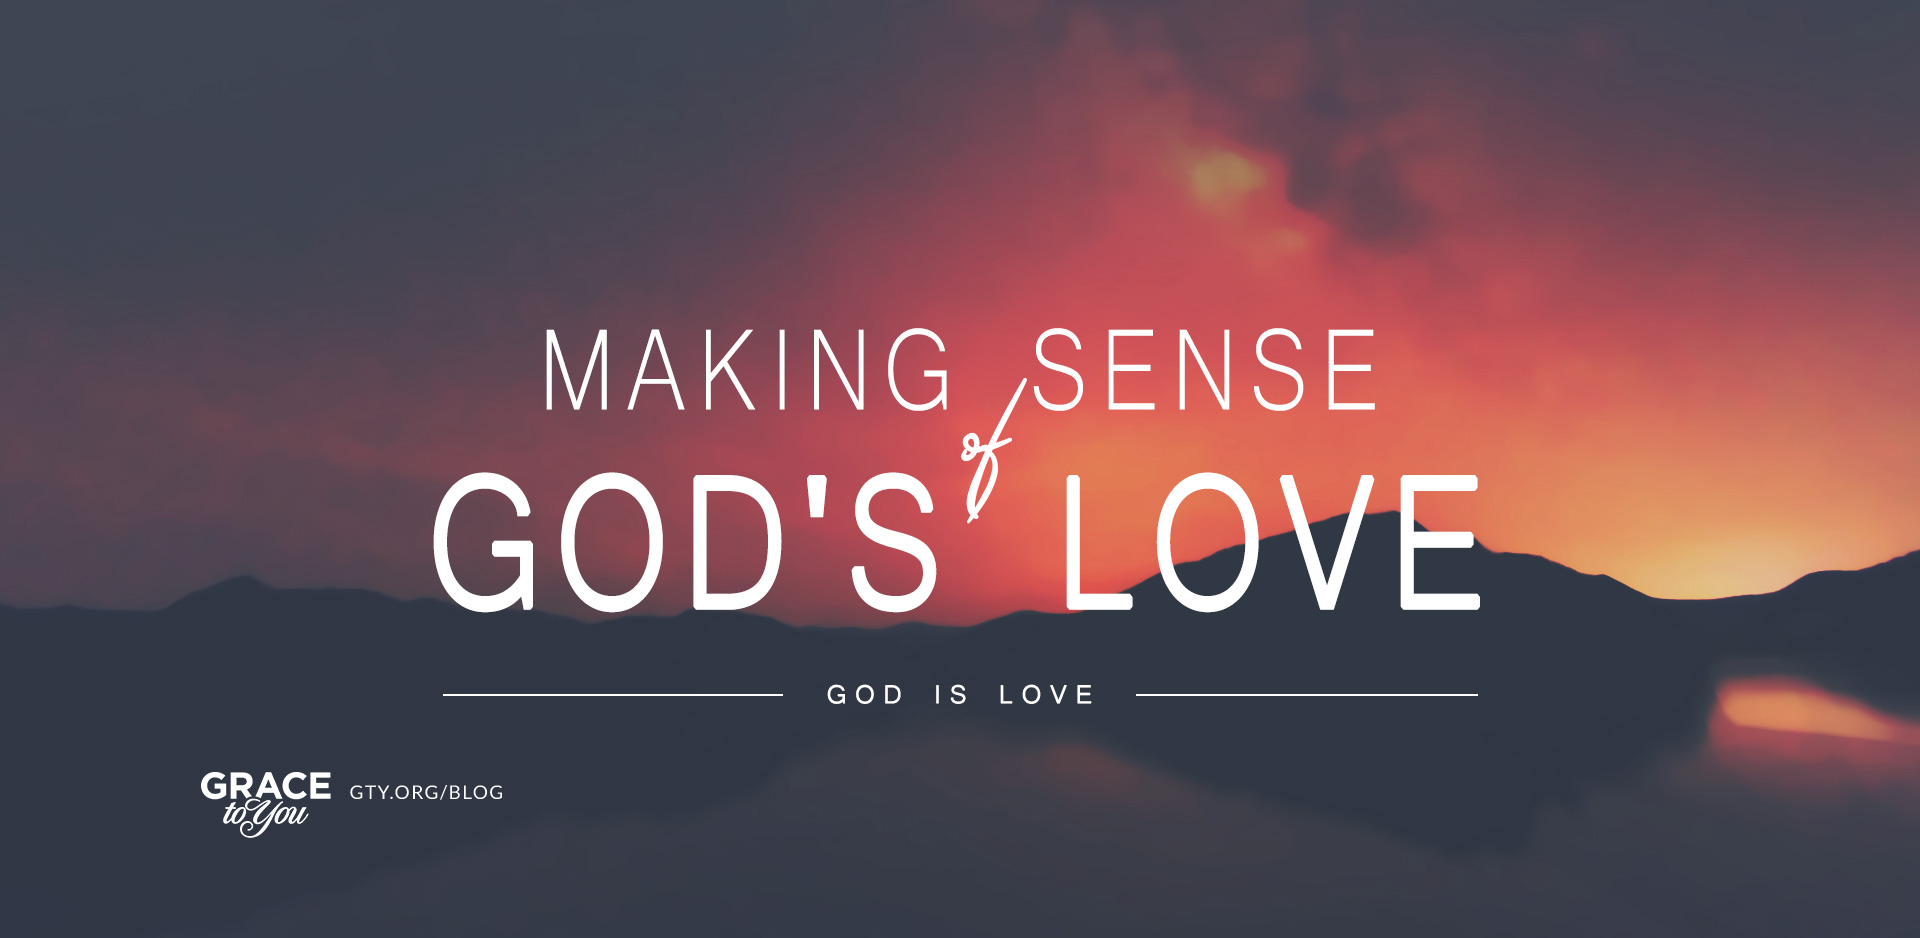 Making Sense of God's Love